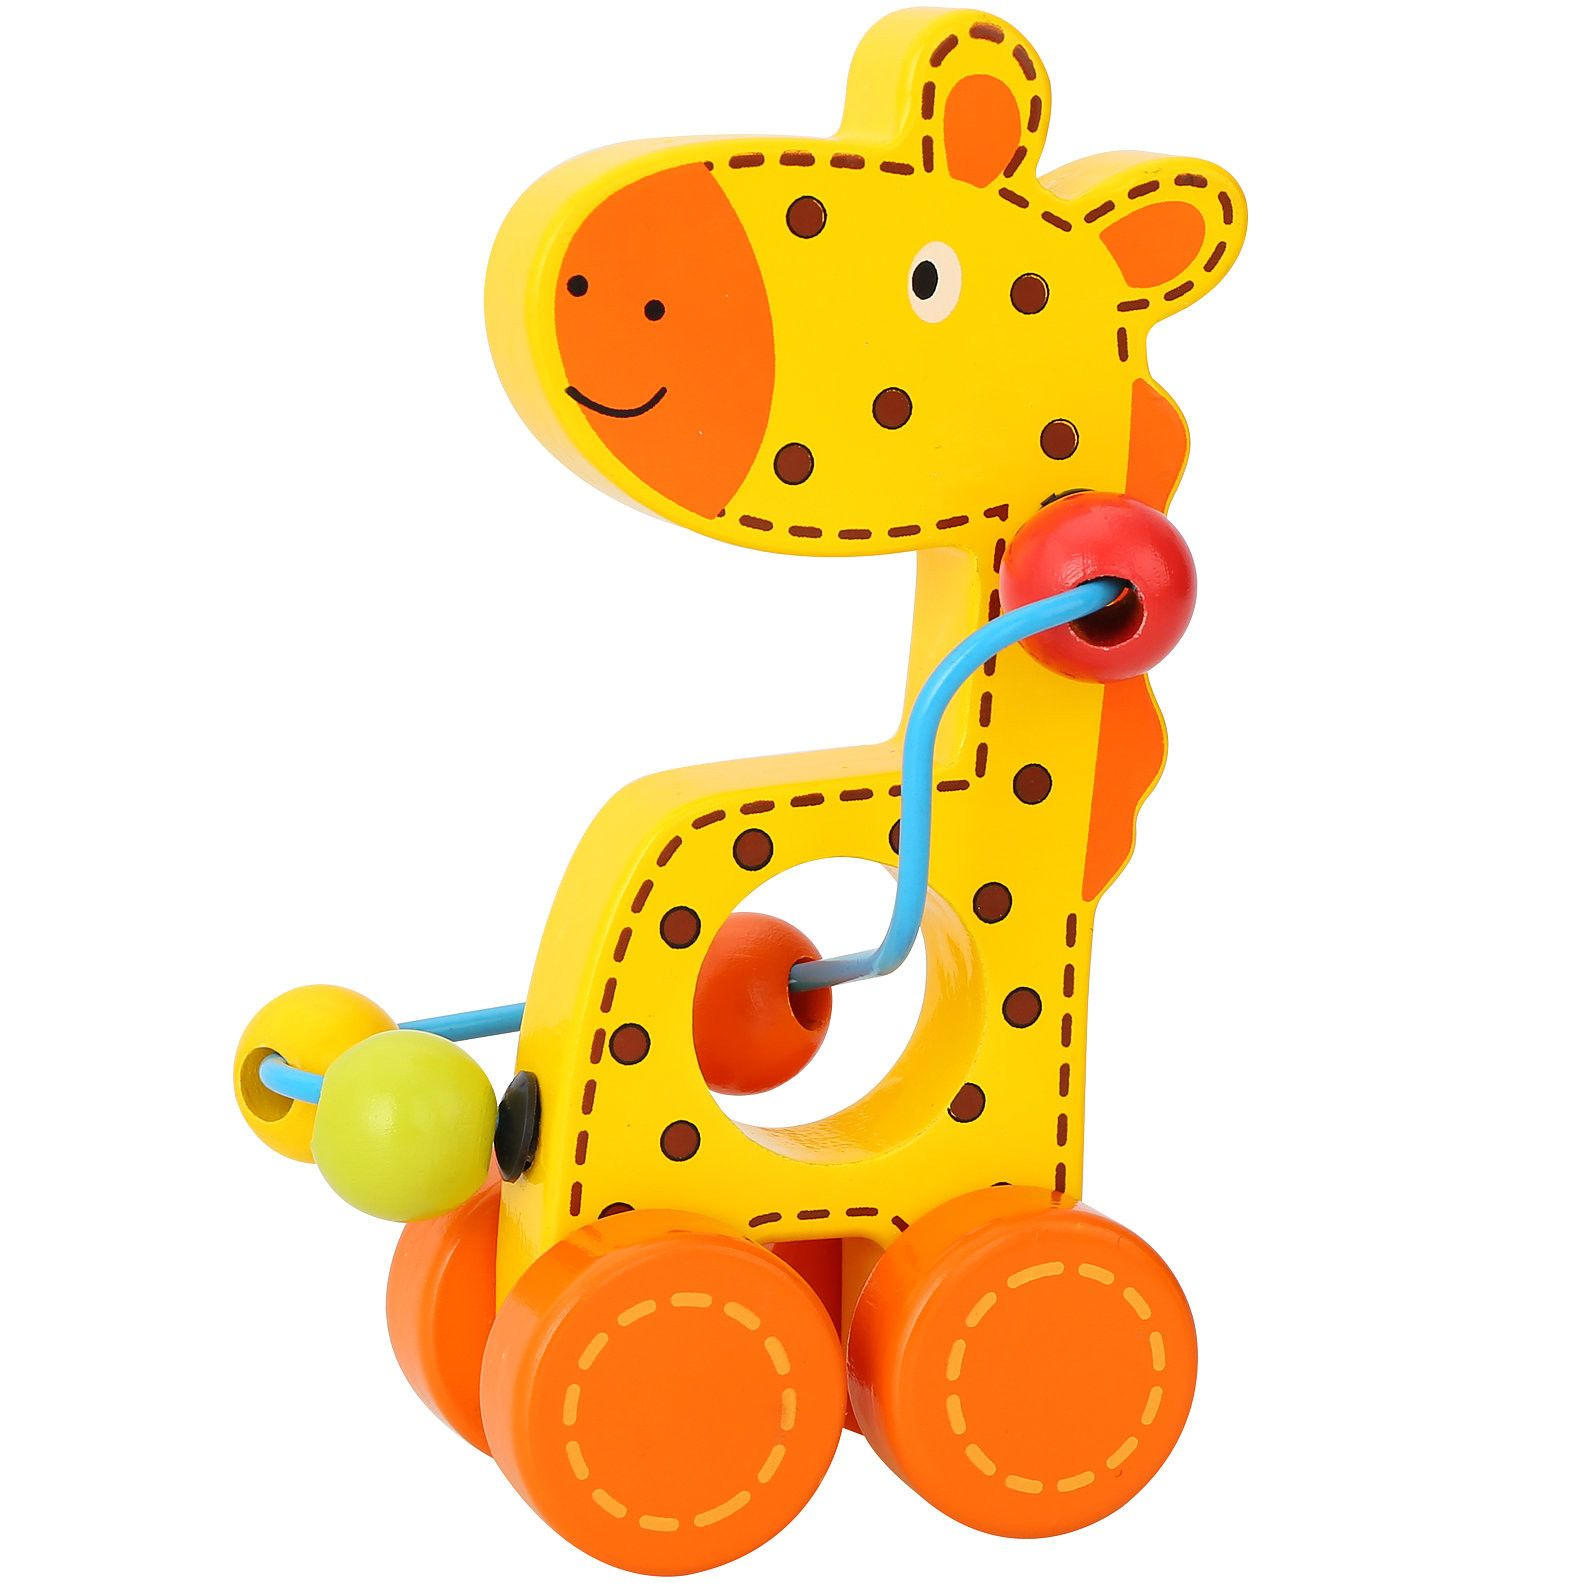 Delightful giraffe push along toy Perfect to help little ones